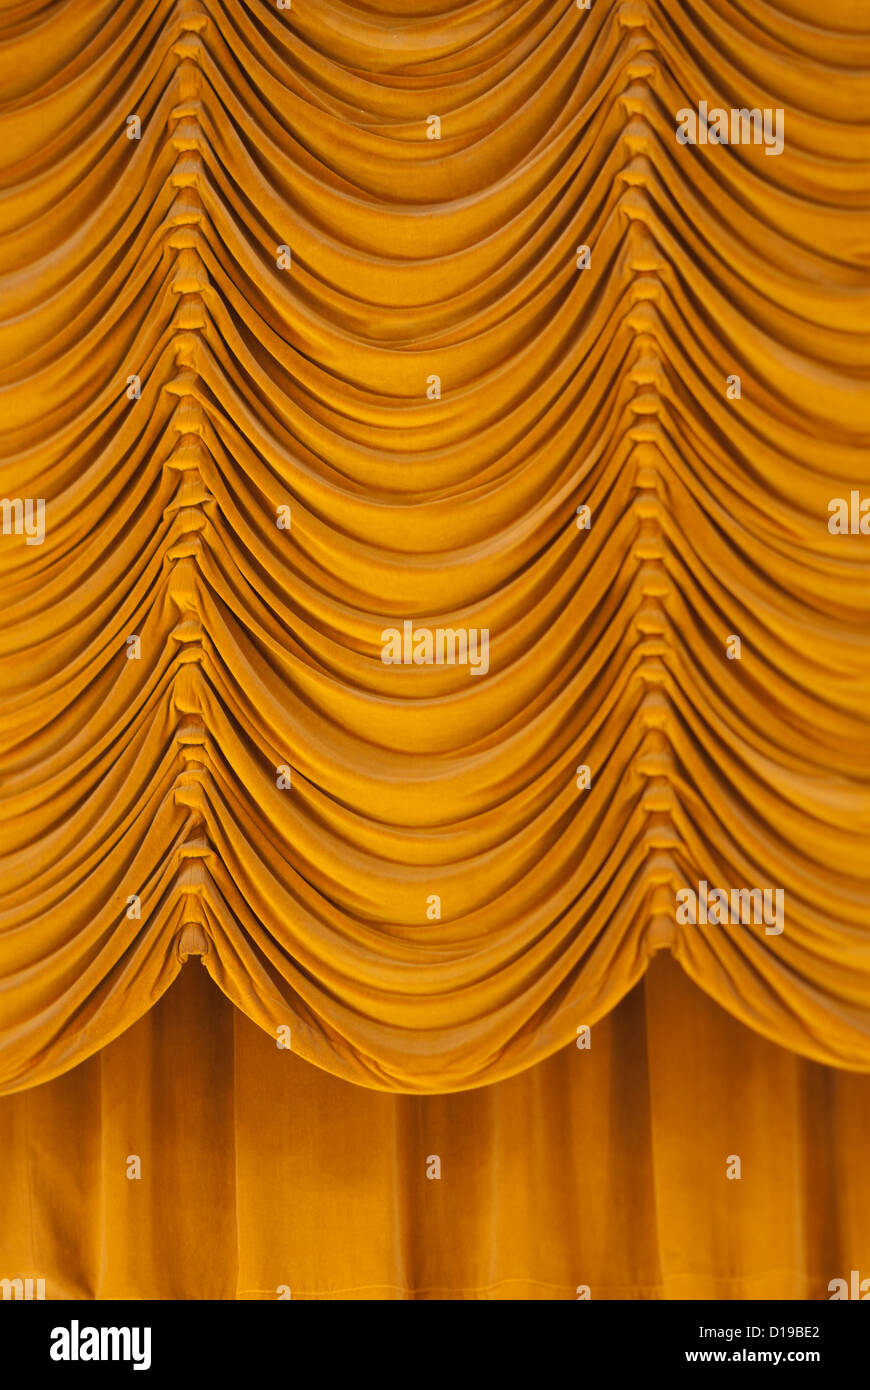 A photograph of a drawn stage curtain. - Stock Image